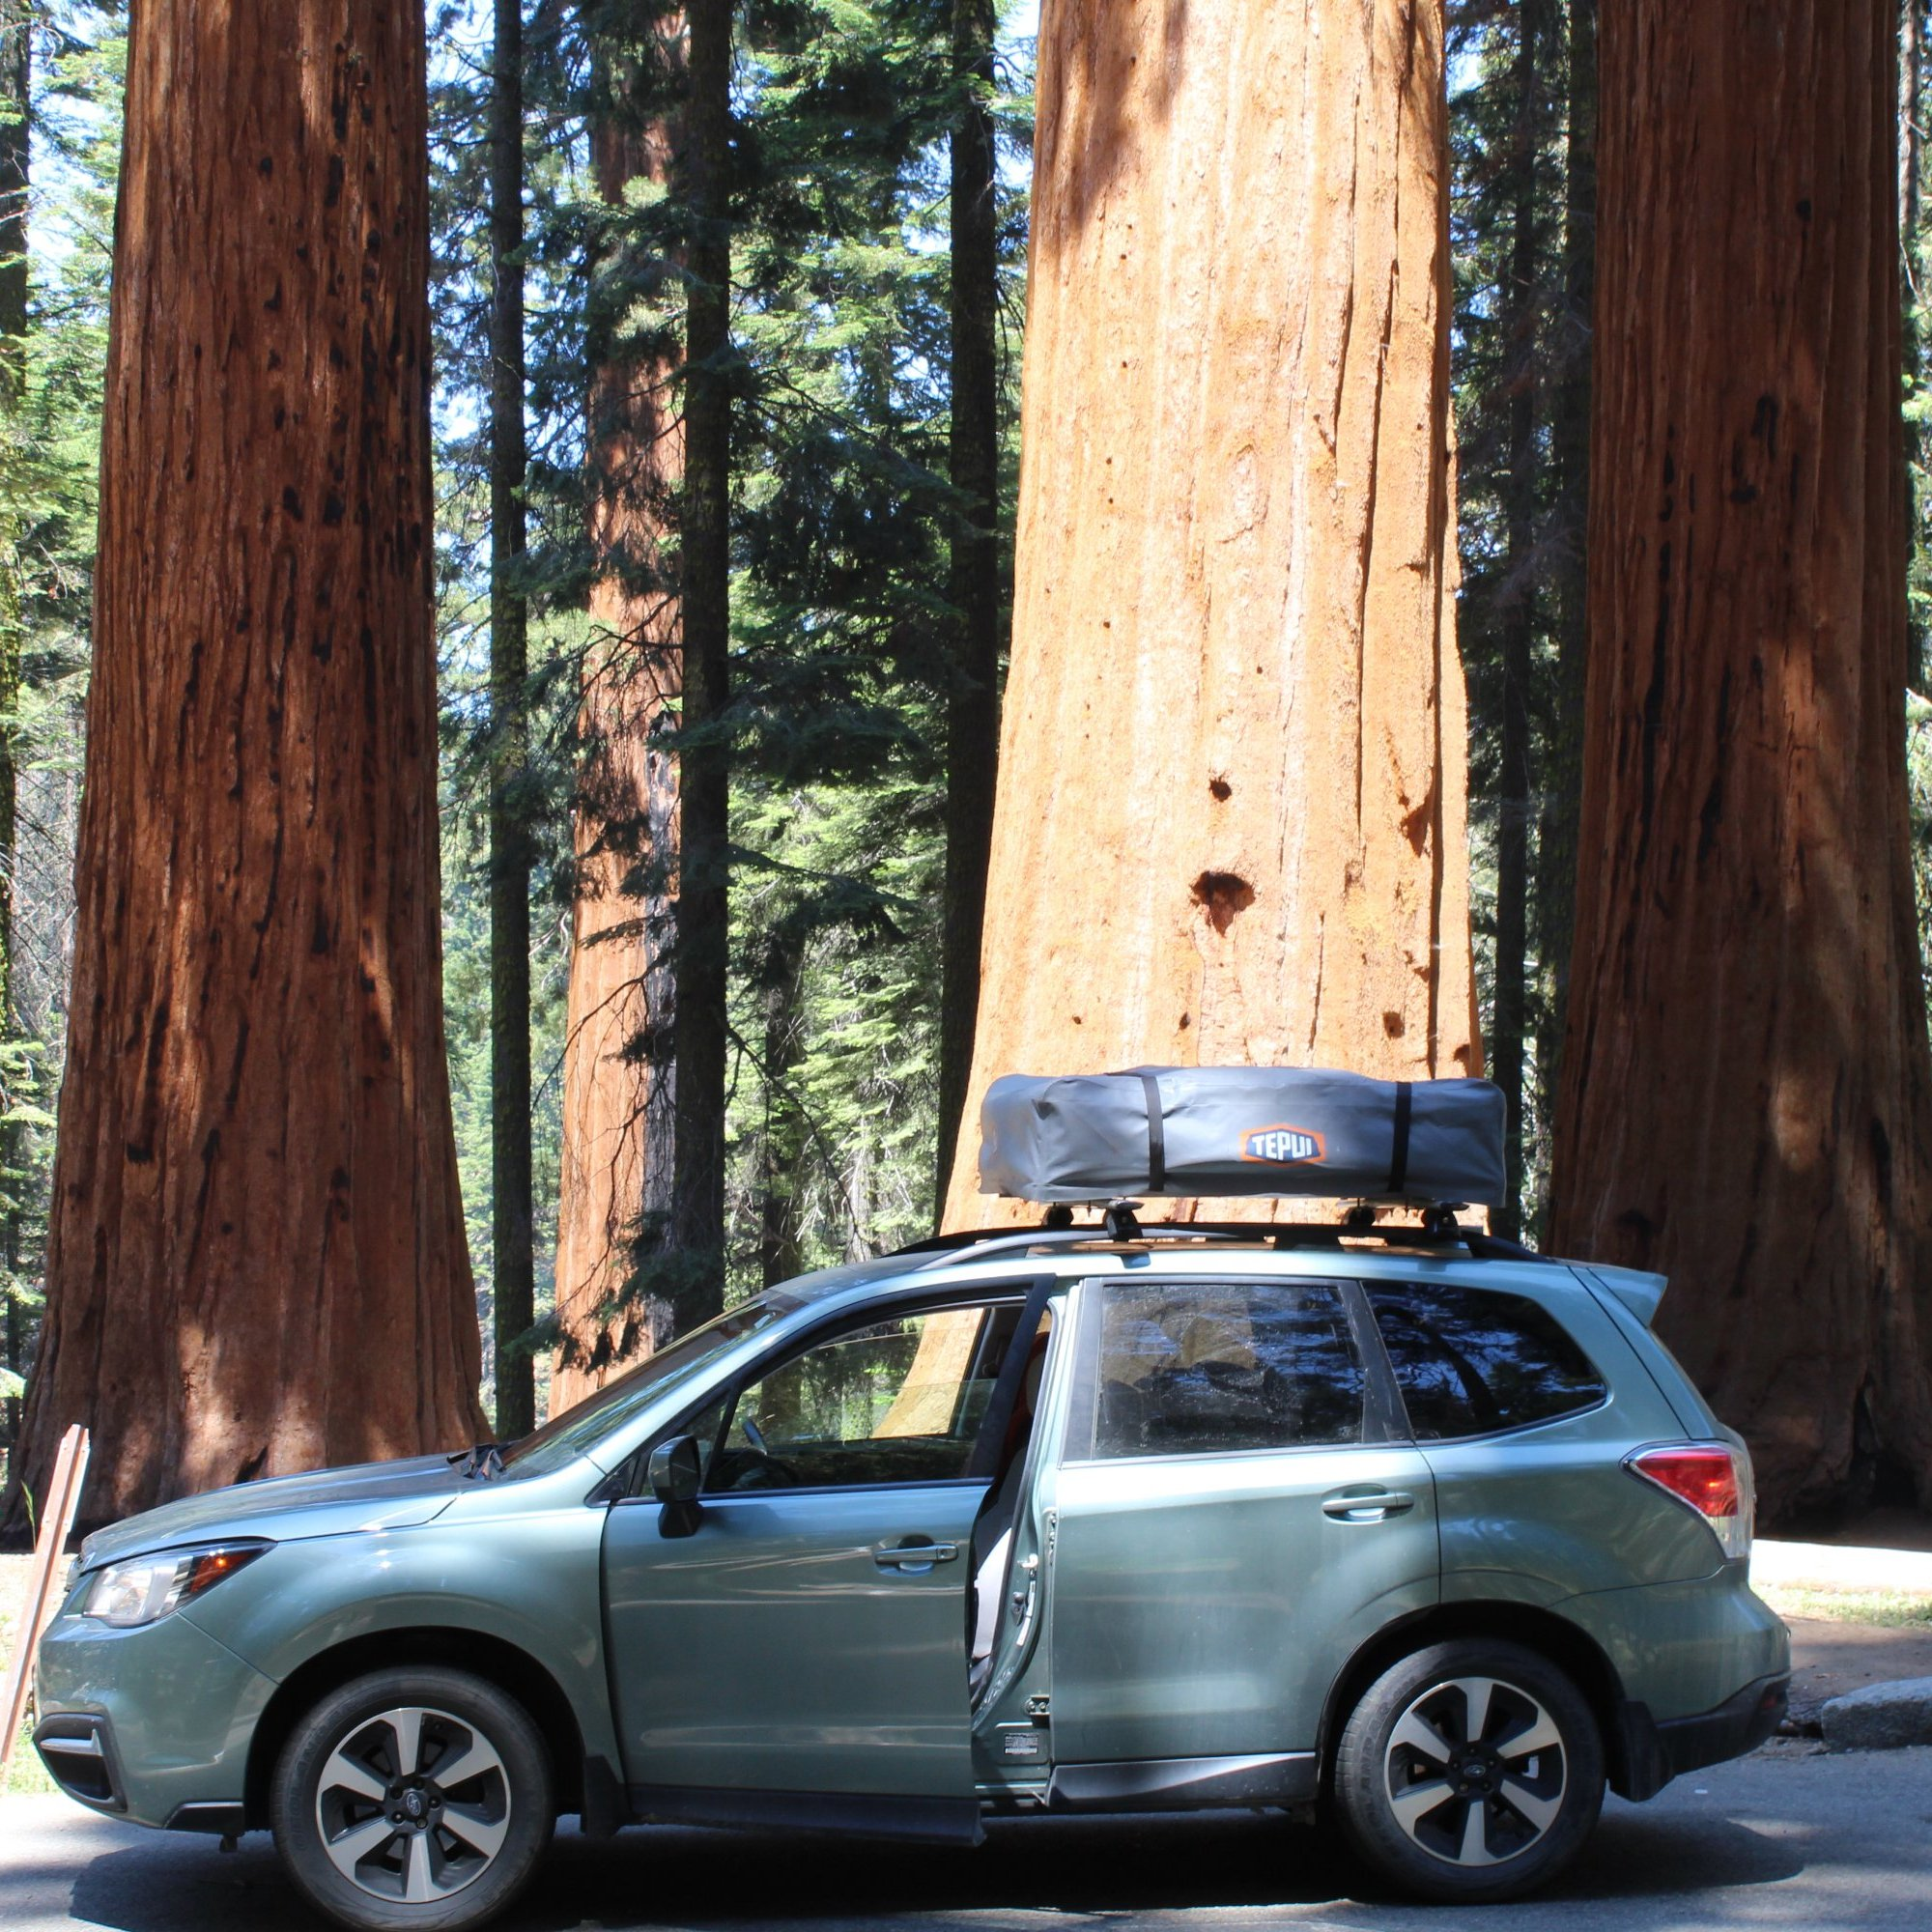 Sequoia National Park - Giant Forest 7-12-19